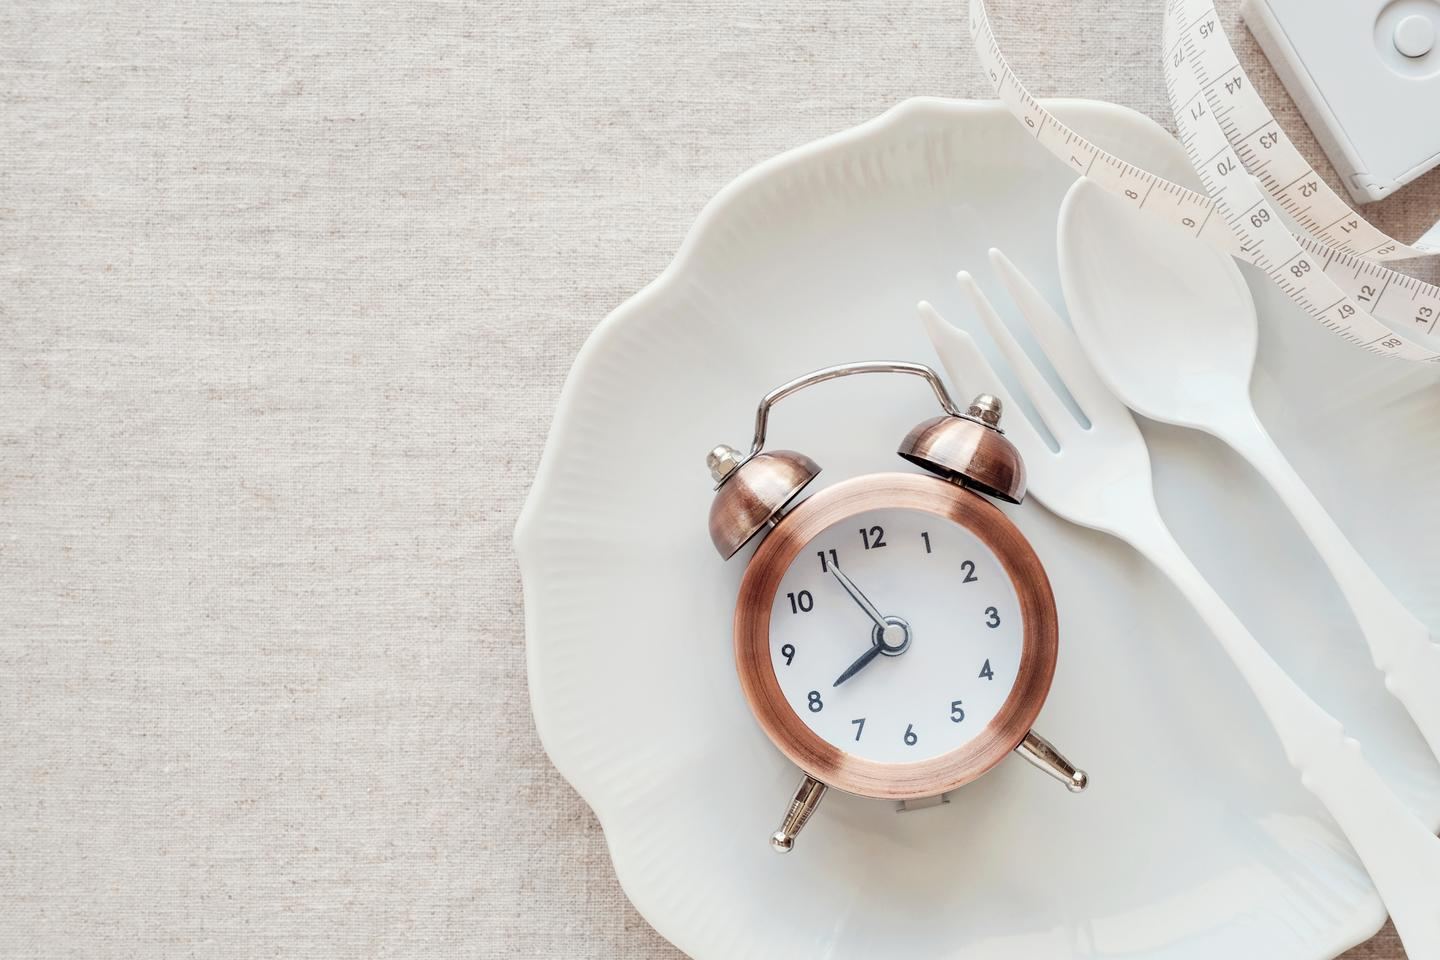 A new analysis of current intermittent fasting research suggests the dietary strategy could soon be incorporated as standard medical health and diet advice